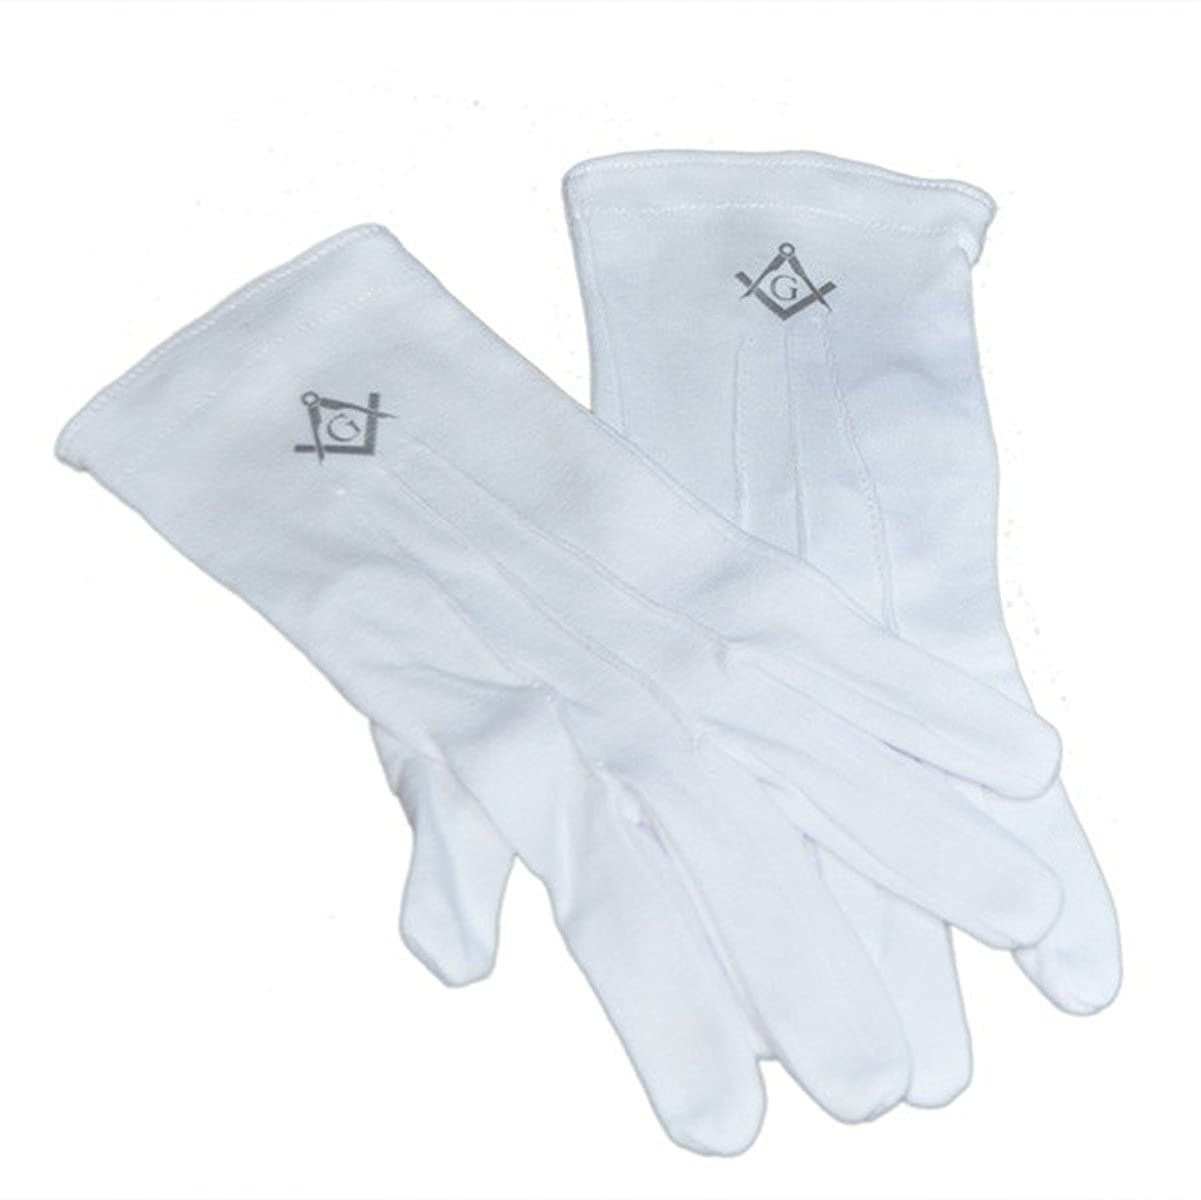 One Size Mens Plain White Cotton Gloves with Silver Masonic Design with G